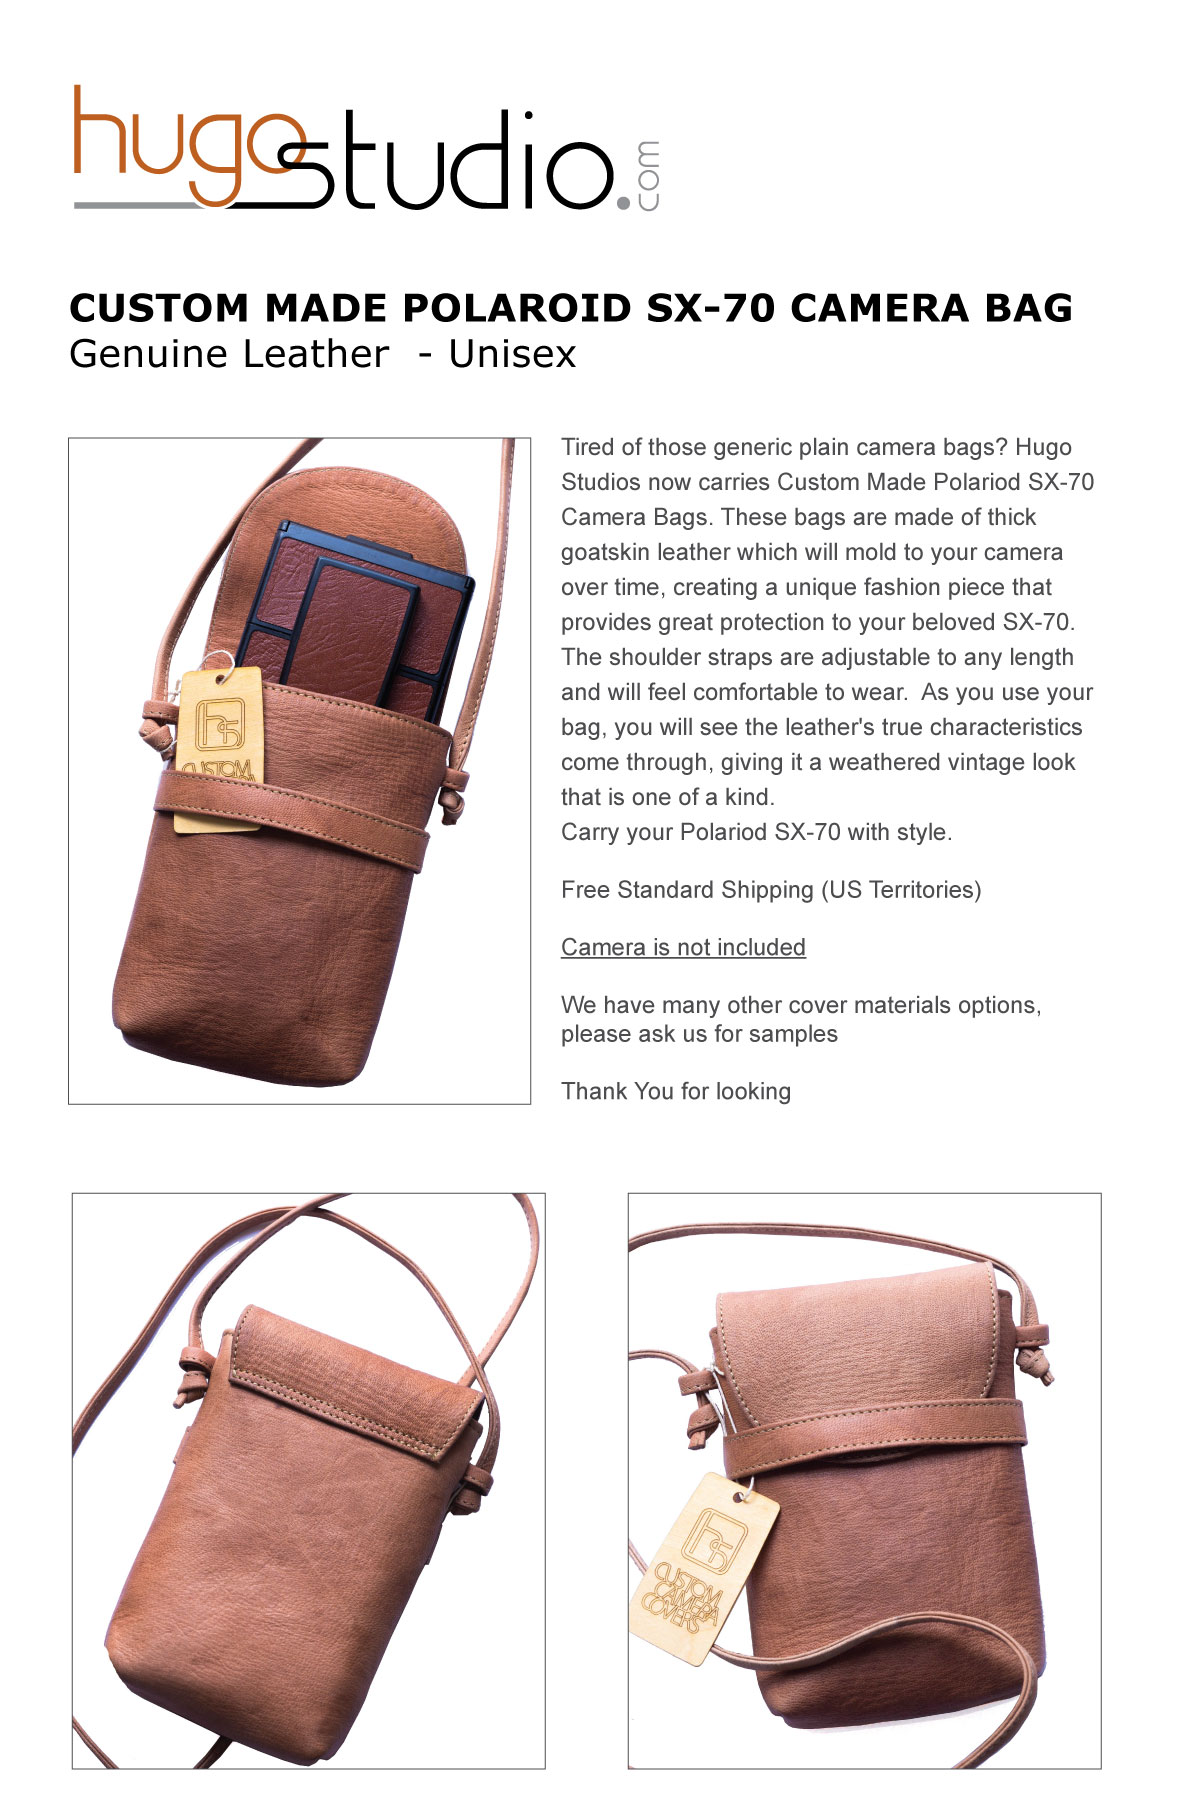 Details About Custom Made Polaroid Sx 70 Camera Bag Genuine Leather Uni